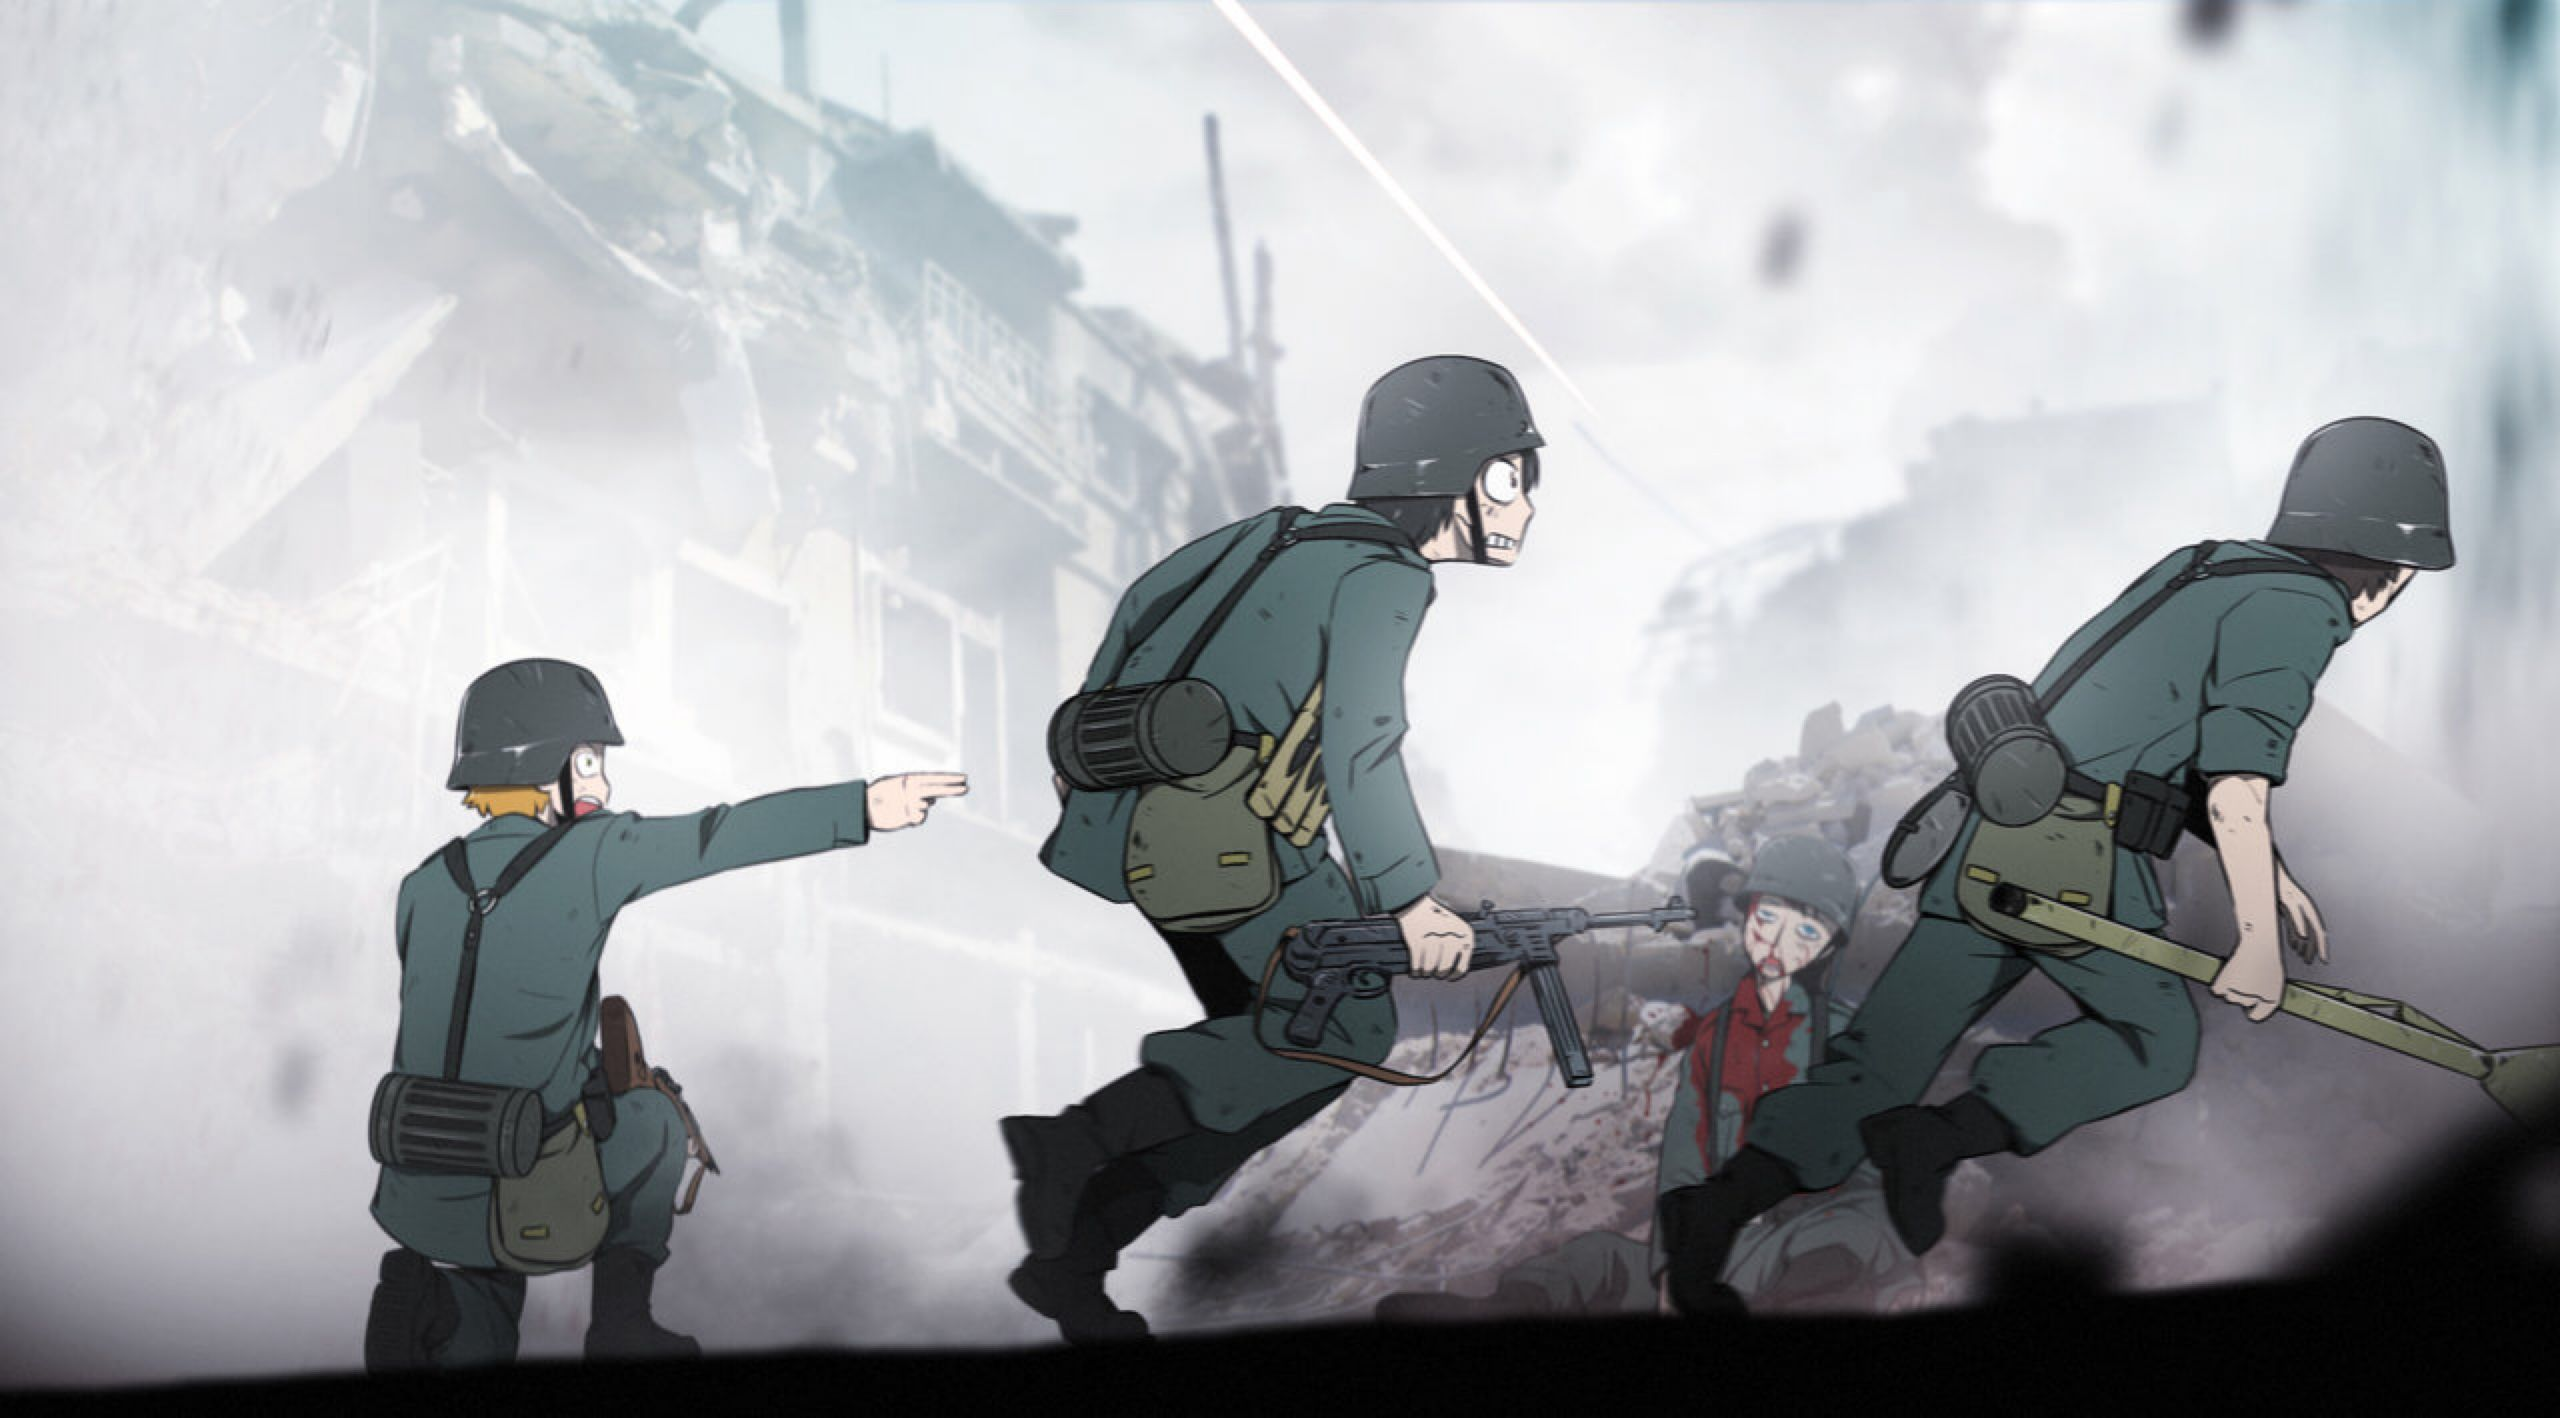 Take The Flanking Position By Xinom On Deviantart Anime Military